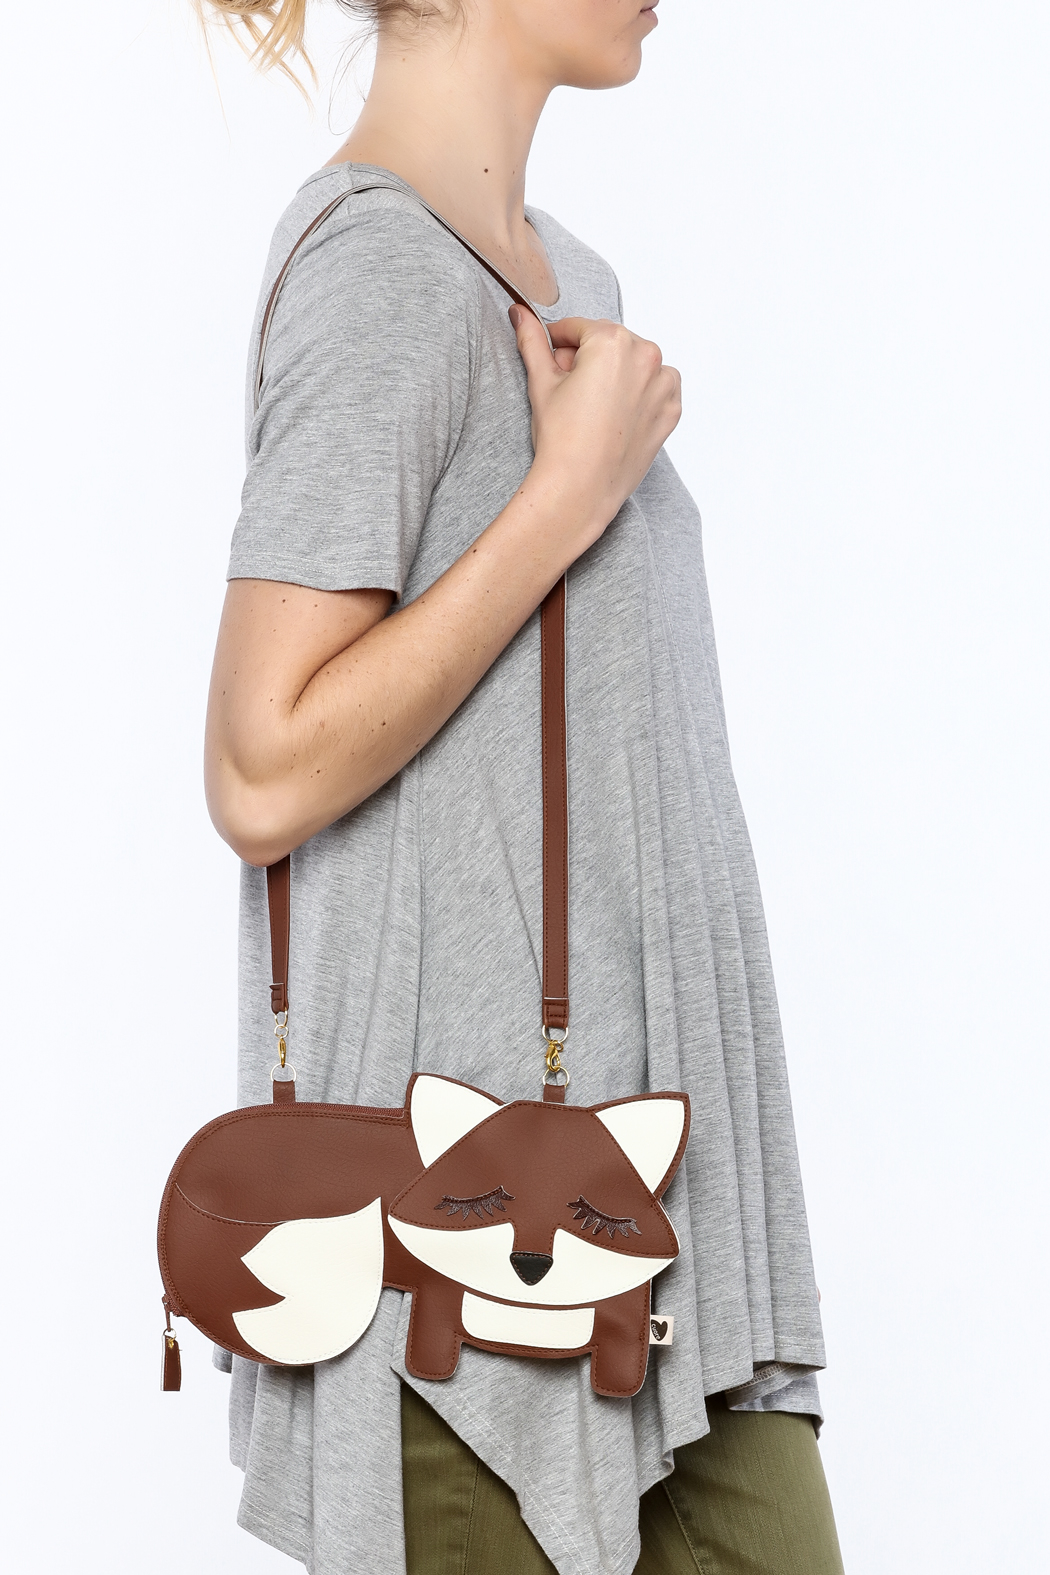 Cuore Brown Fox Purse - Back Cropped Image